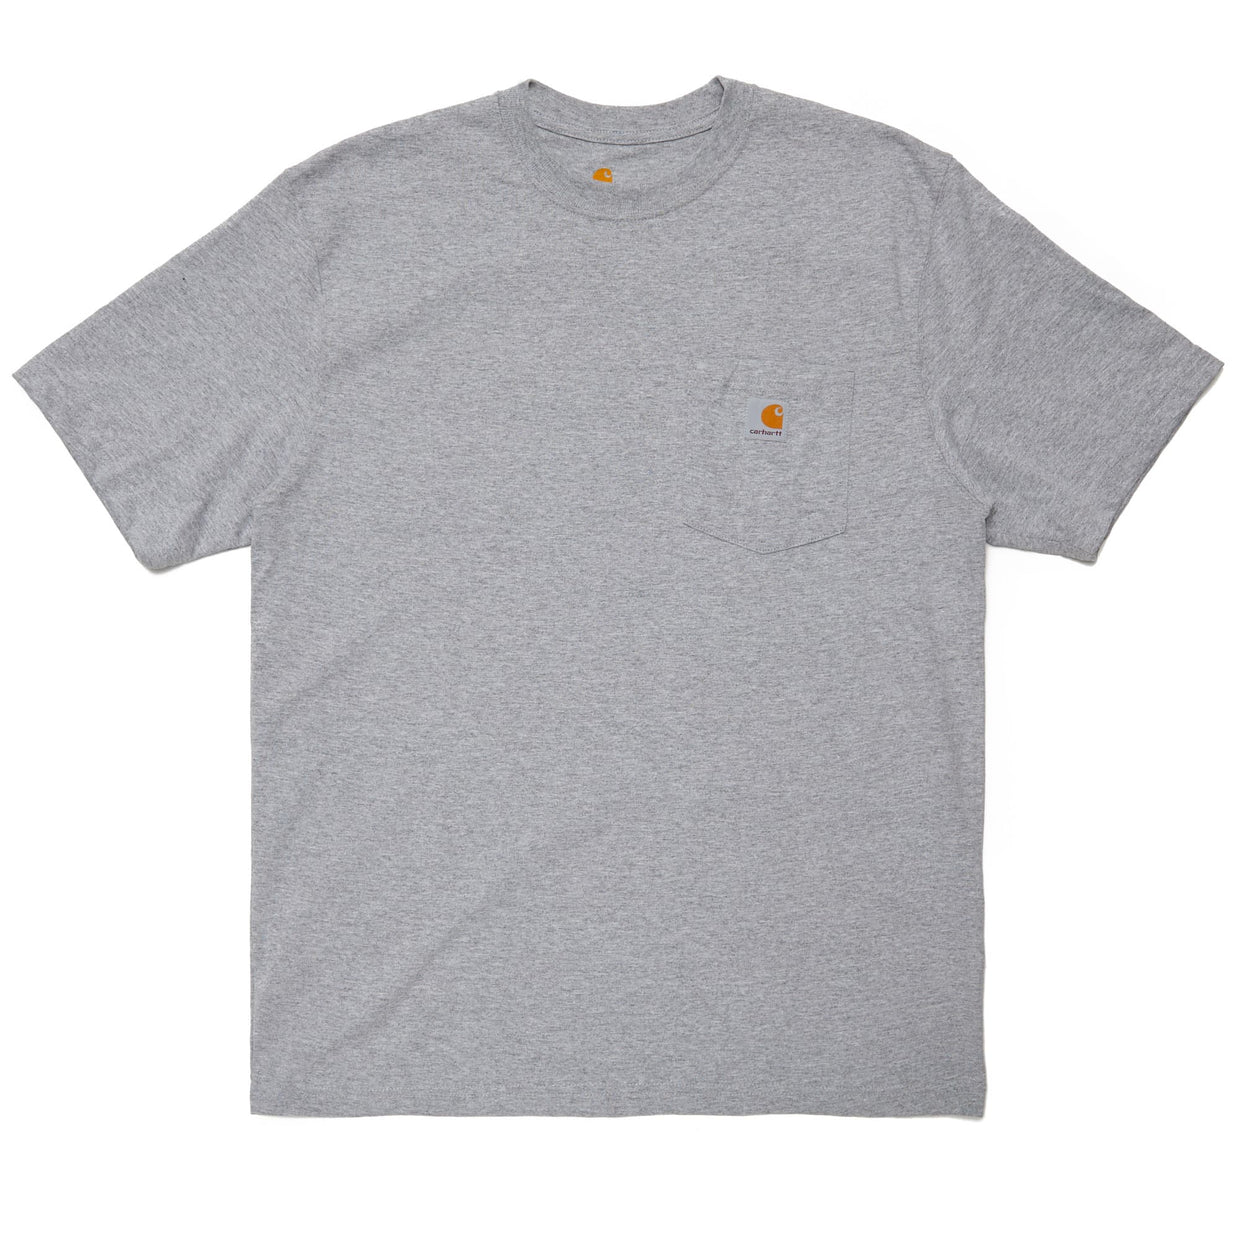 116 x Carhartt 'Unashamed To The Grave' Tee